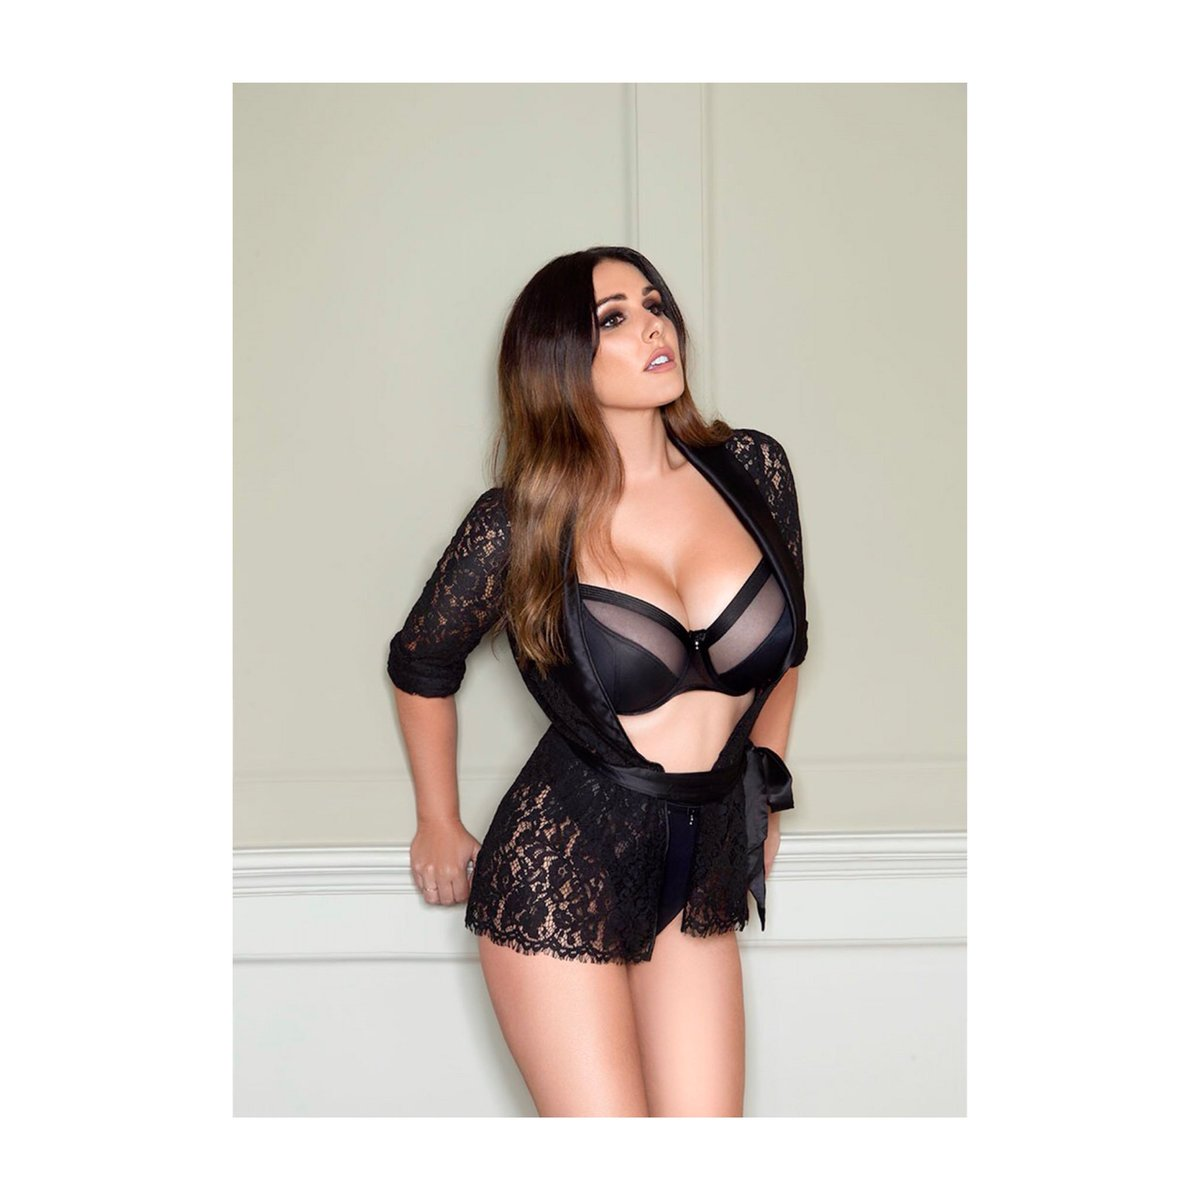 2019 Lucy Pinder naked (54 foto and video), Topless, Bikini, Instagram, braless 2017